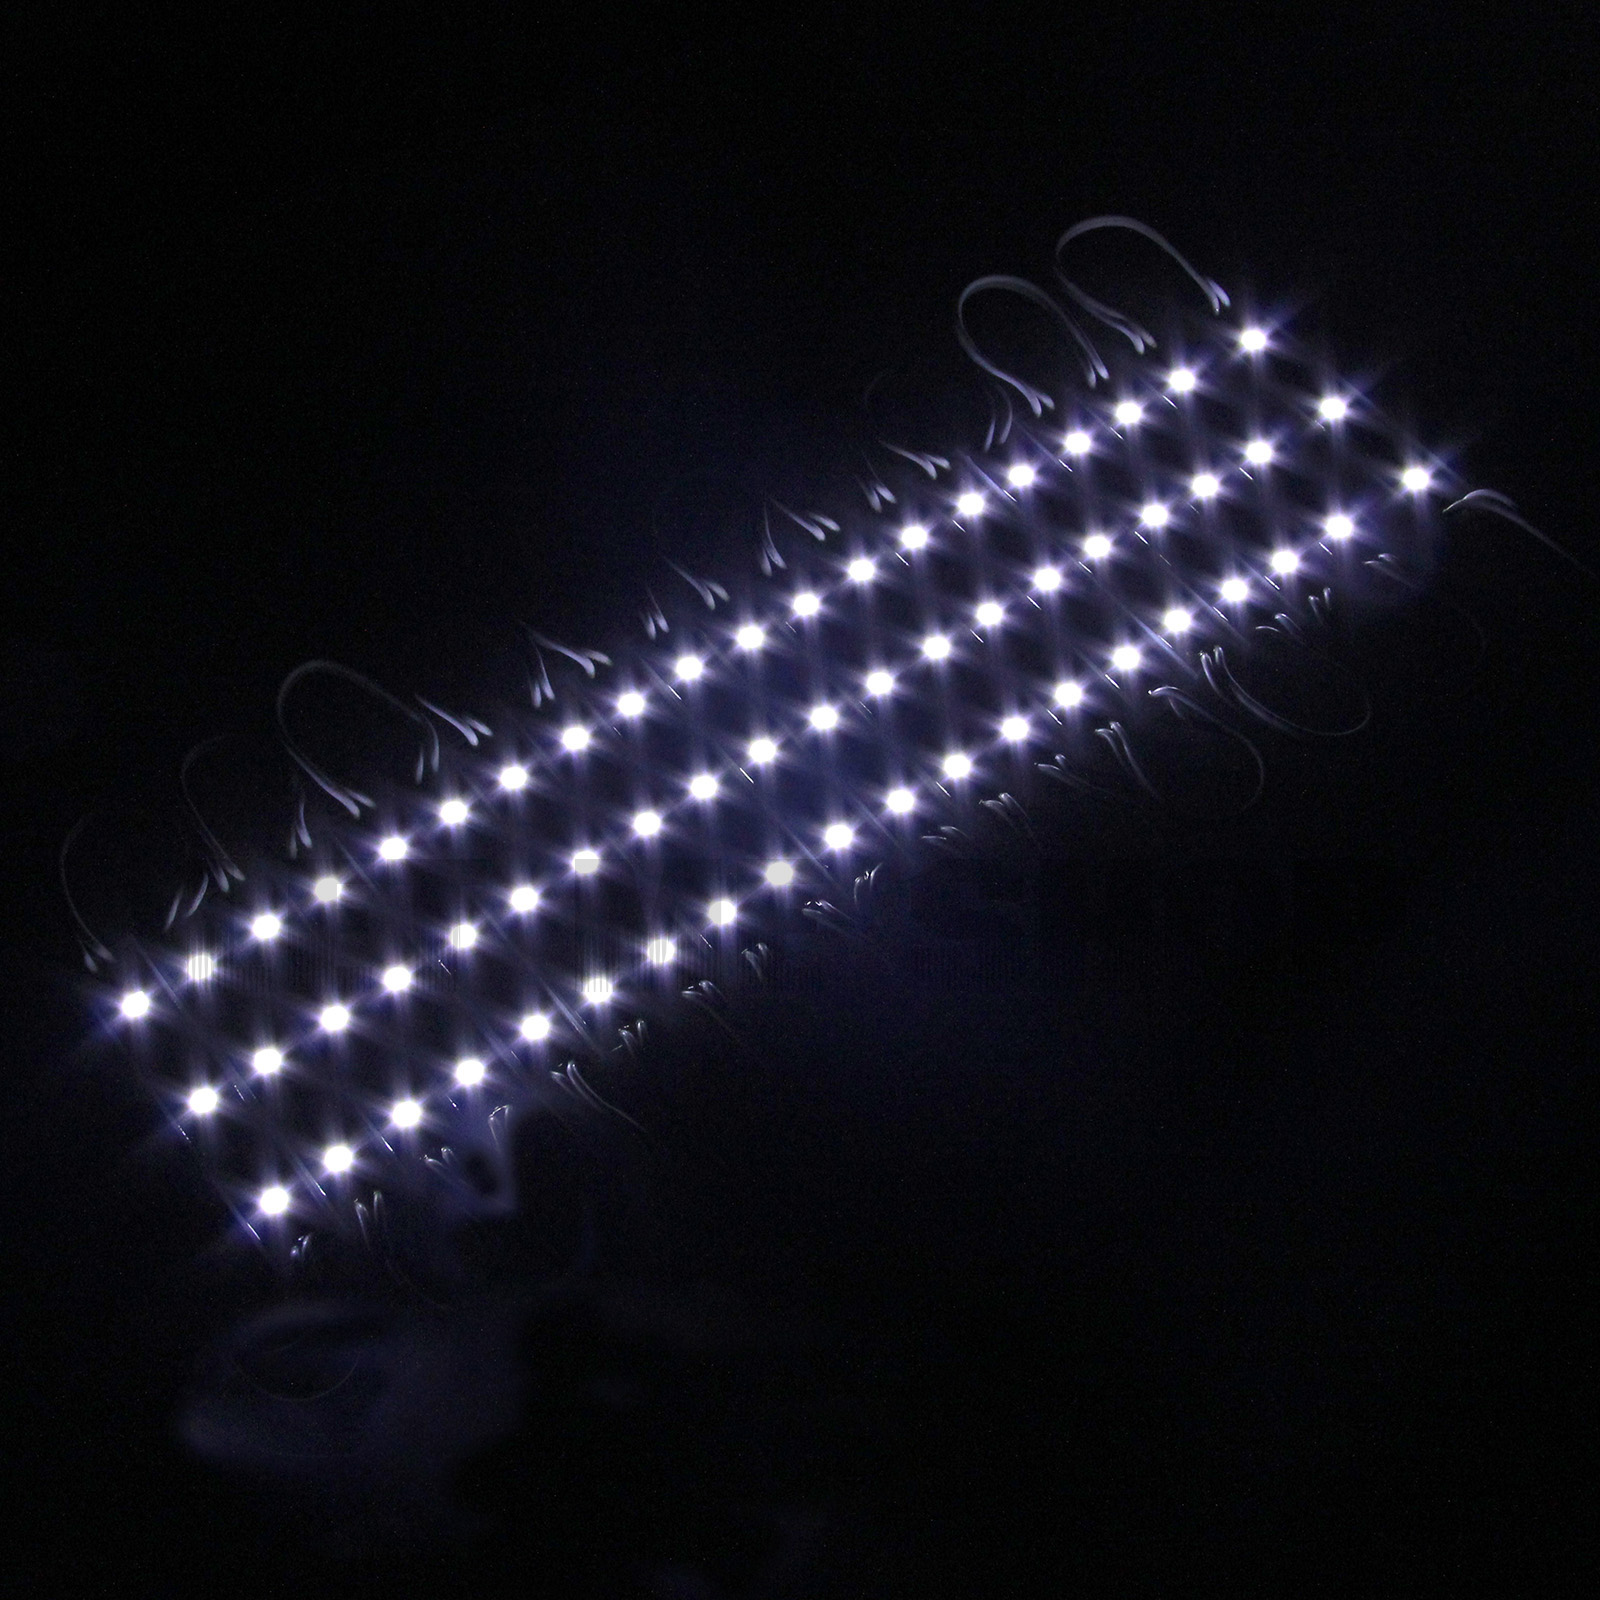 20 led lights for cosmetic vanity makeup lighted mirror remote control ebay. Black Bedroom Furniture Sets. Home Design Ideas